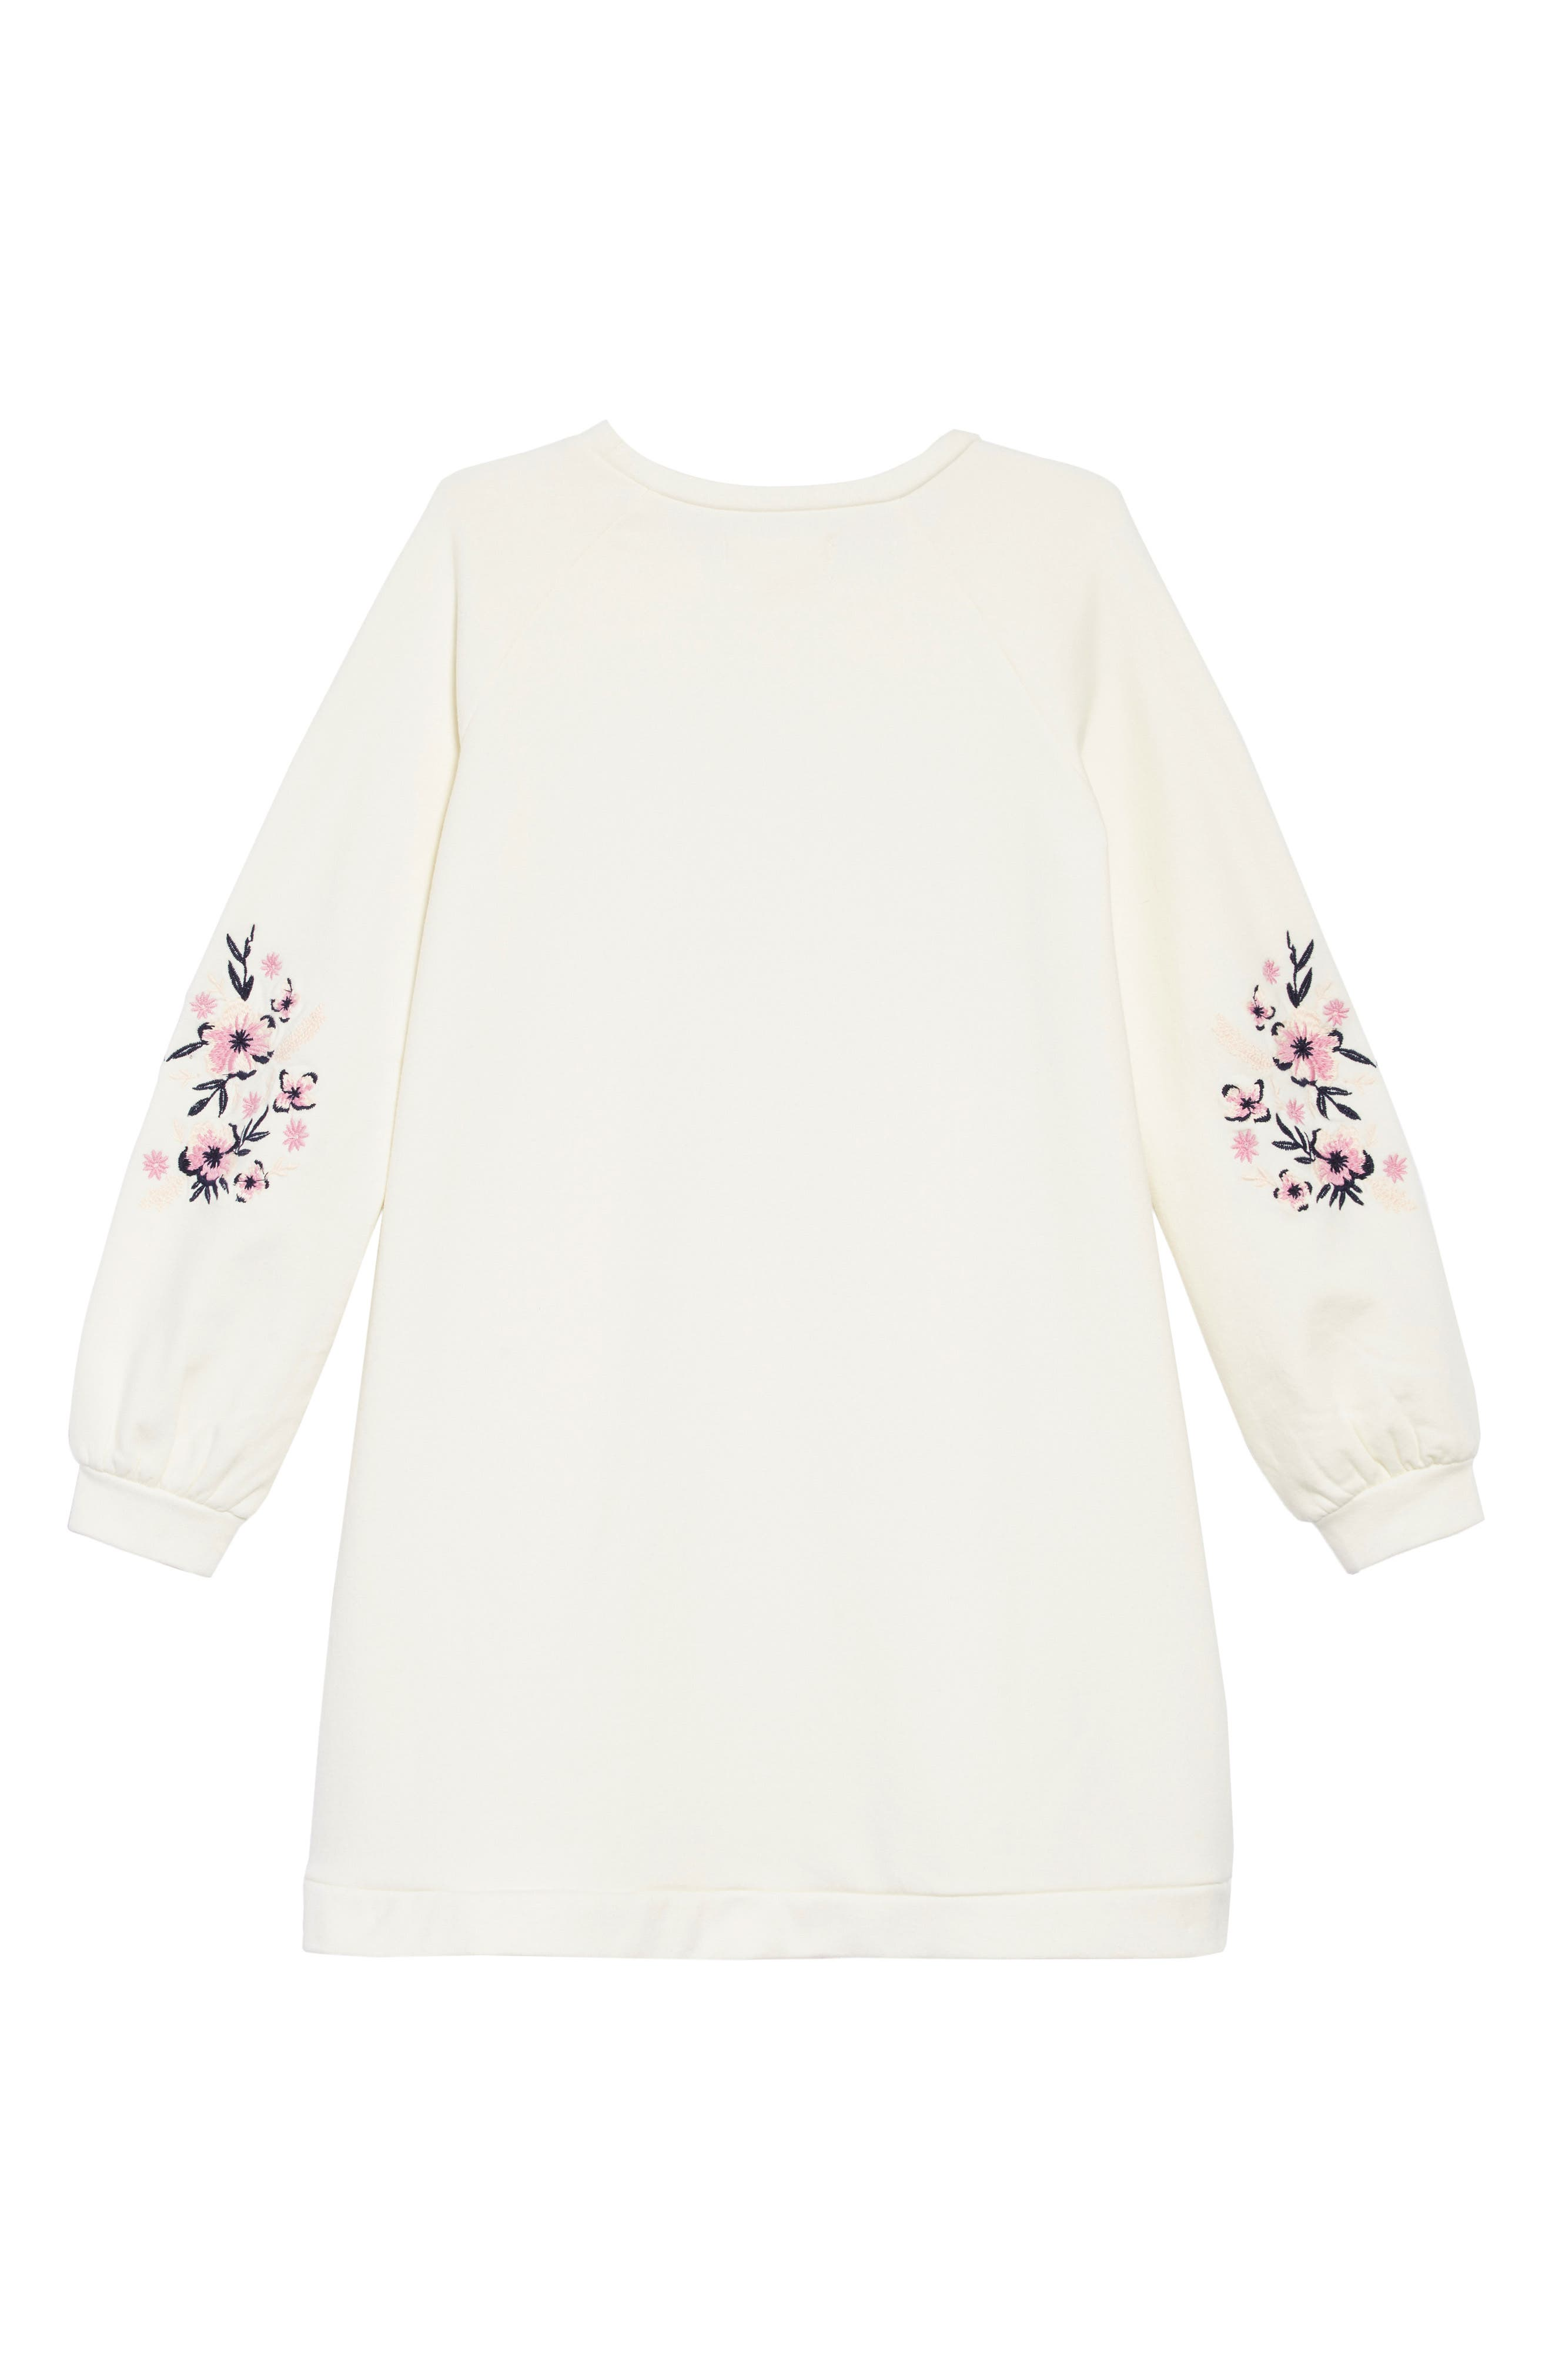 Embroidered Sleeve Sweatshirt Dress,                             Alternate thumbnail 2, color,                             IVORY EGRET